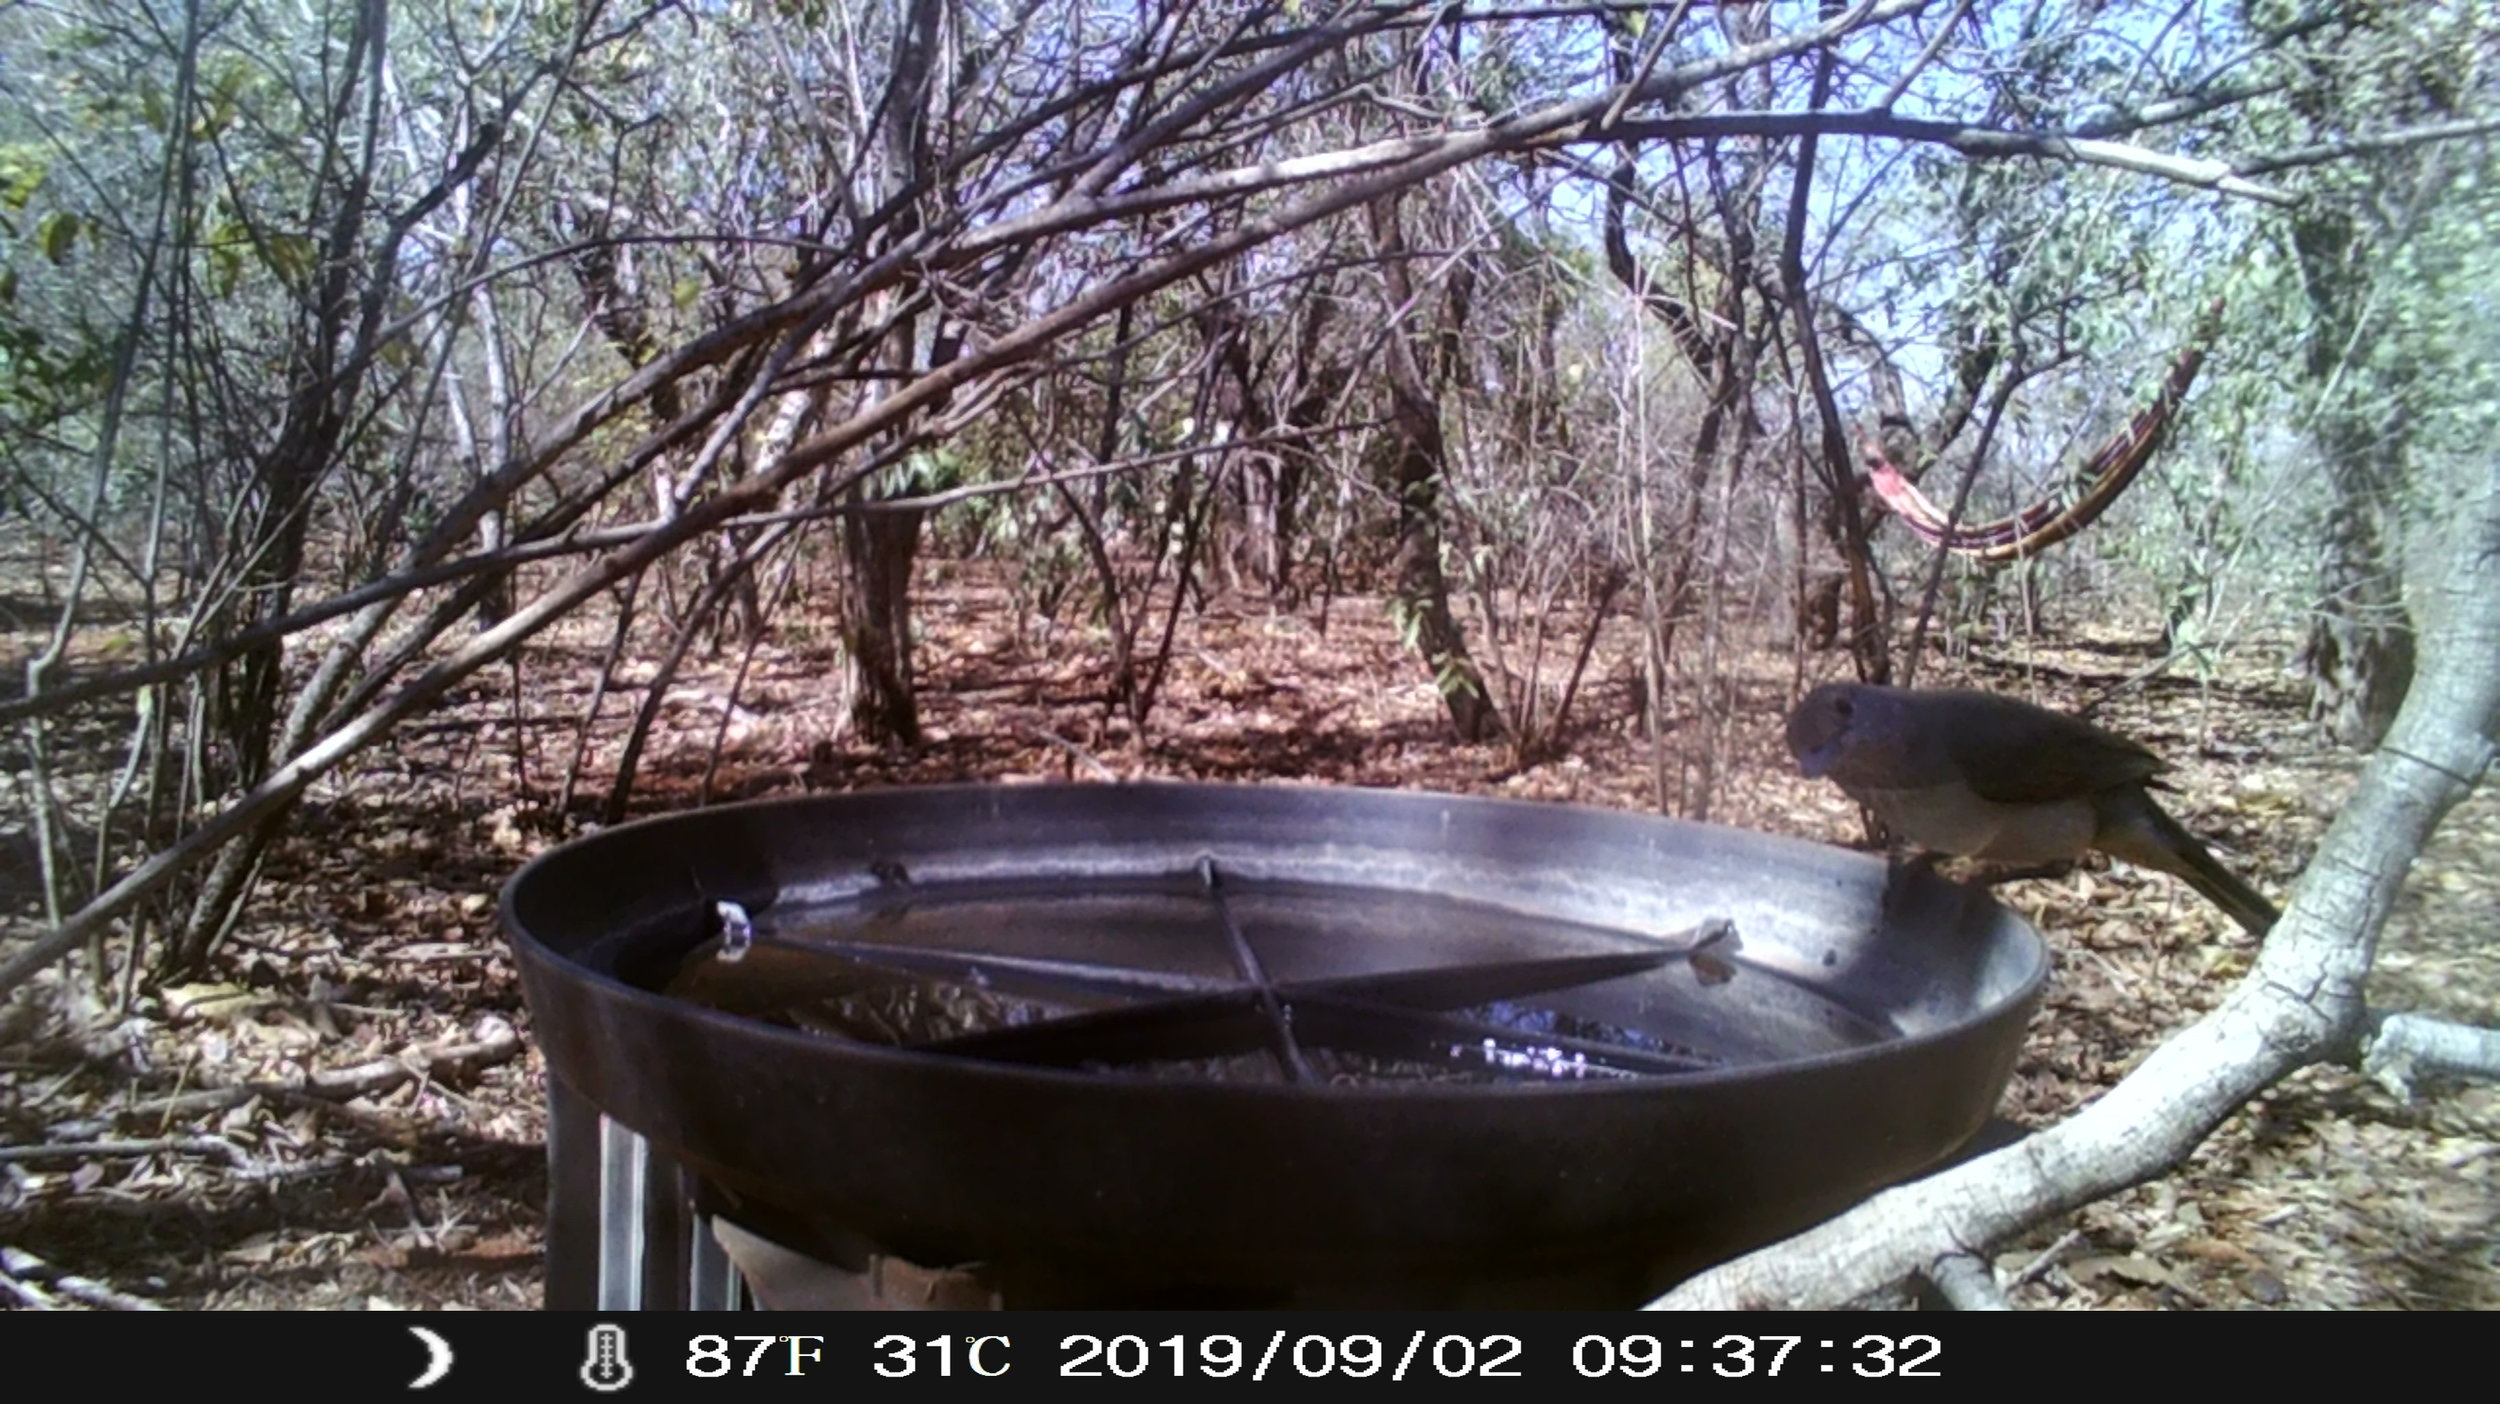 A Grey Shrike-thrush peers cheekily at the camera. This is one species yet to be recorded on the Wardens' bird bath list as the bird must actually be seen to interact with the water. Even the 4 photos taken of it by the camera trap didn't show it interacting with the water.